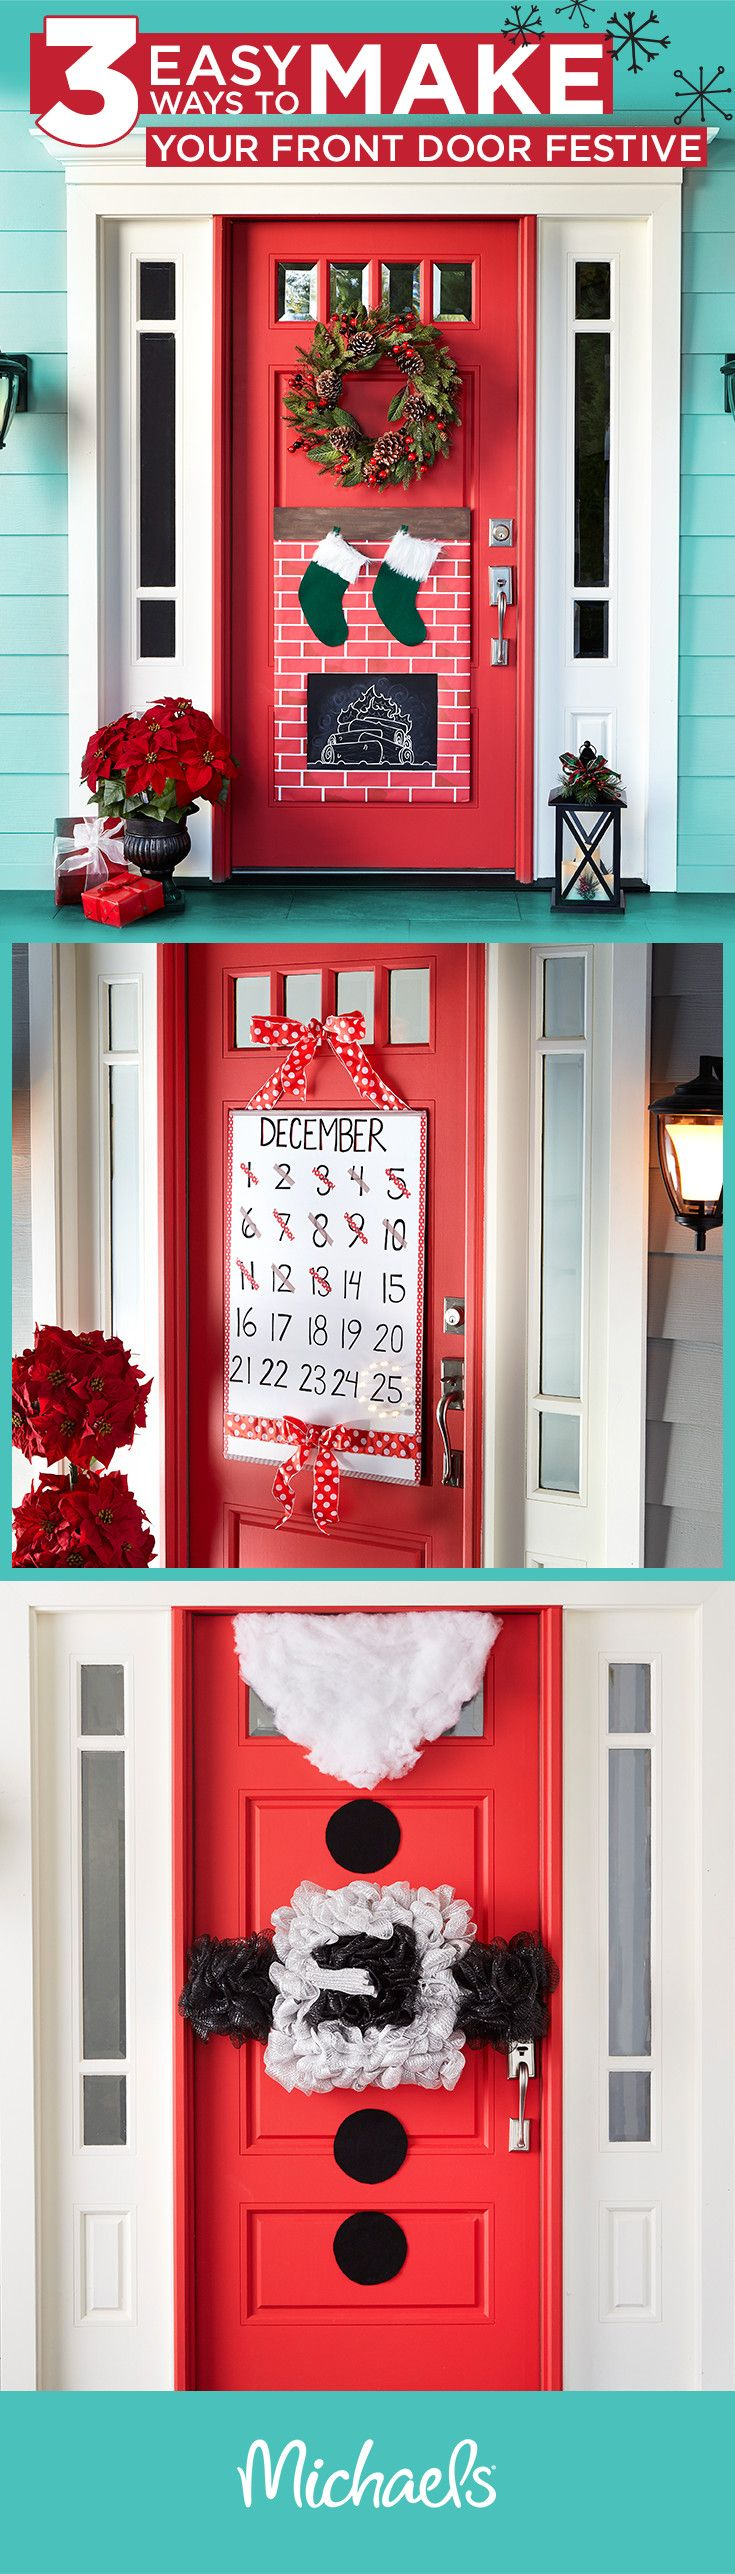 Welcome holiday guests with festive door décor. You can make these fun and whimsical decorations in just a few simple steps. For more inpsiration and ideas, visit Michaels.com